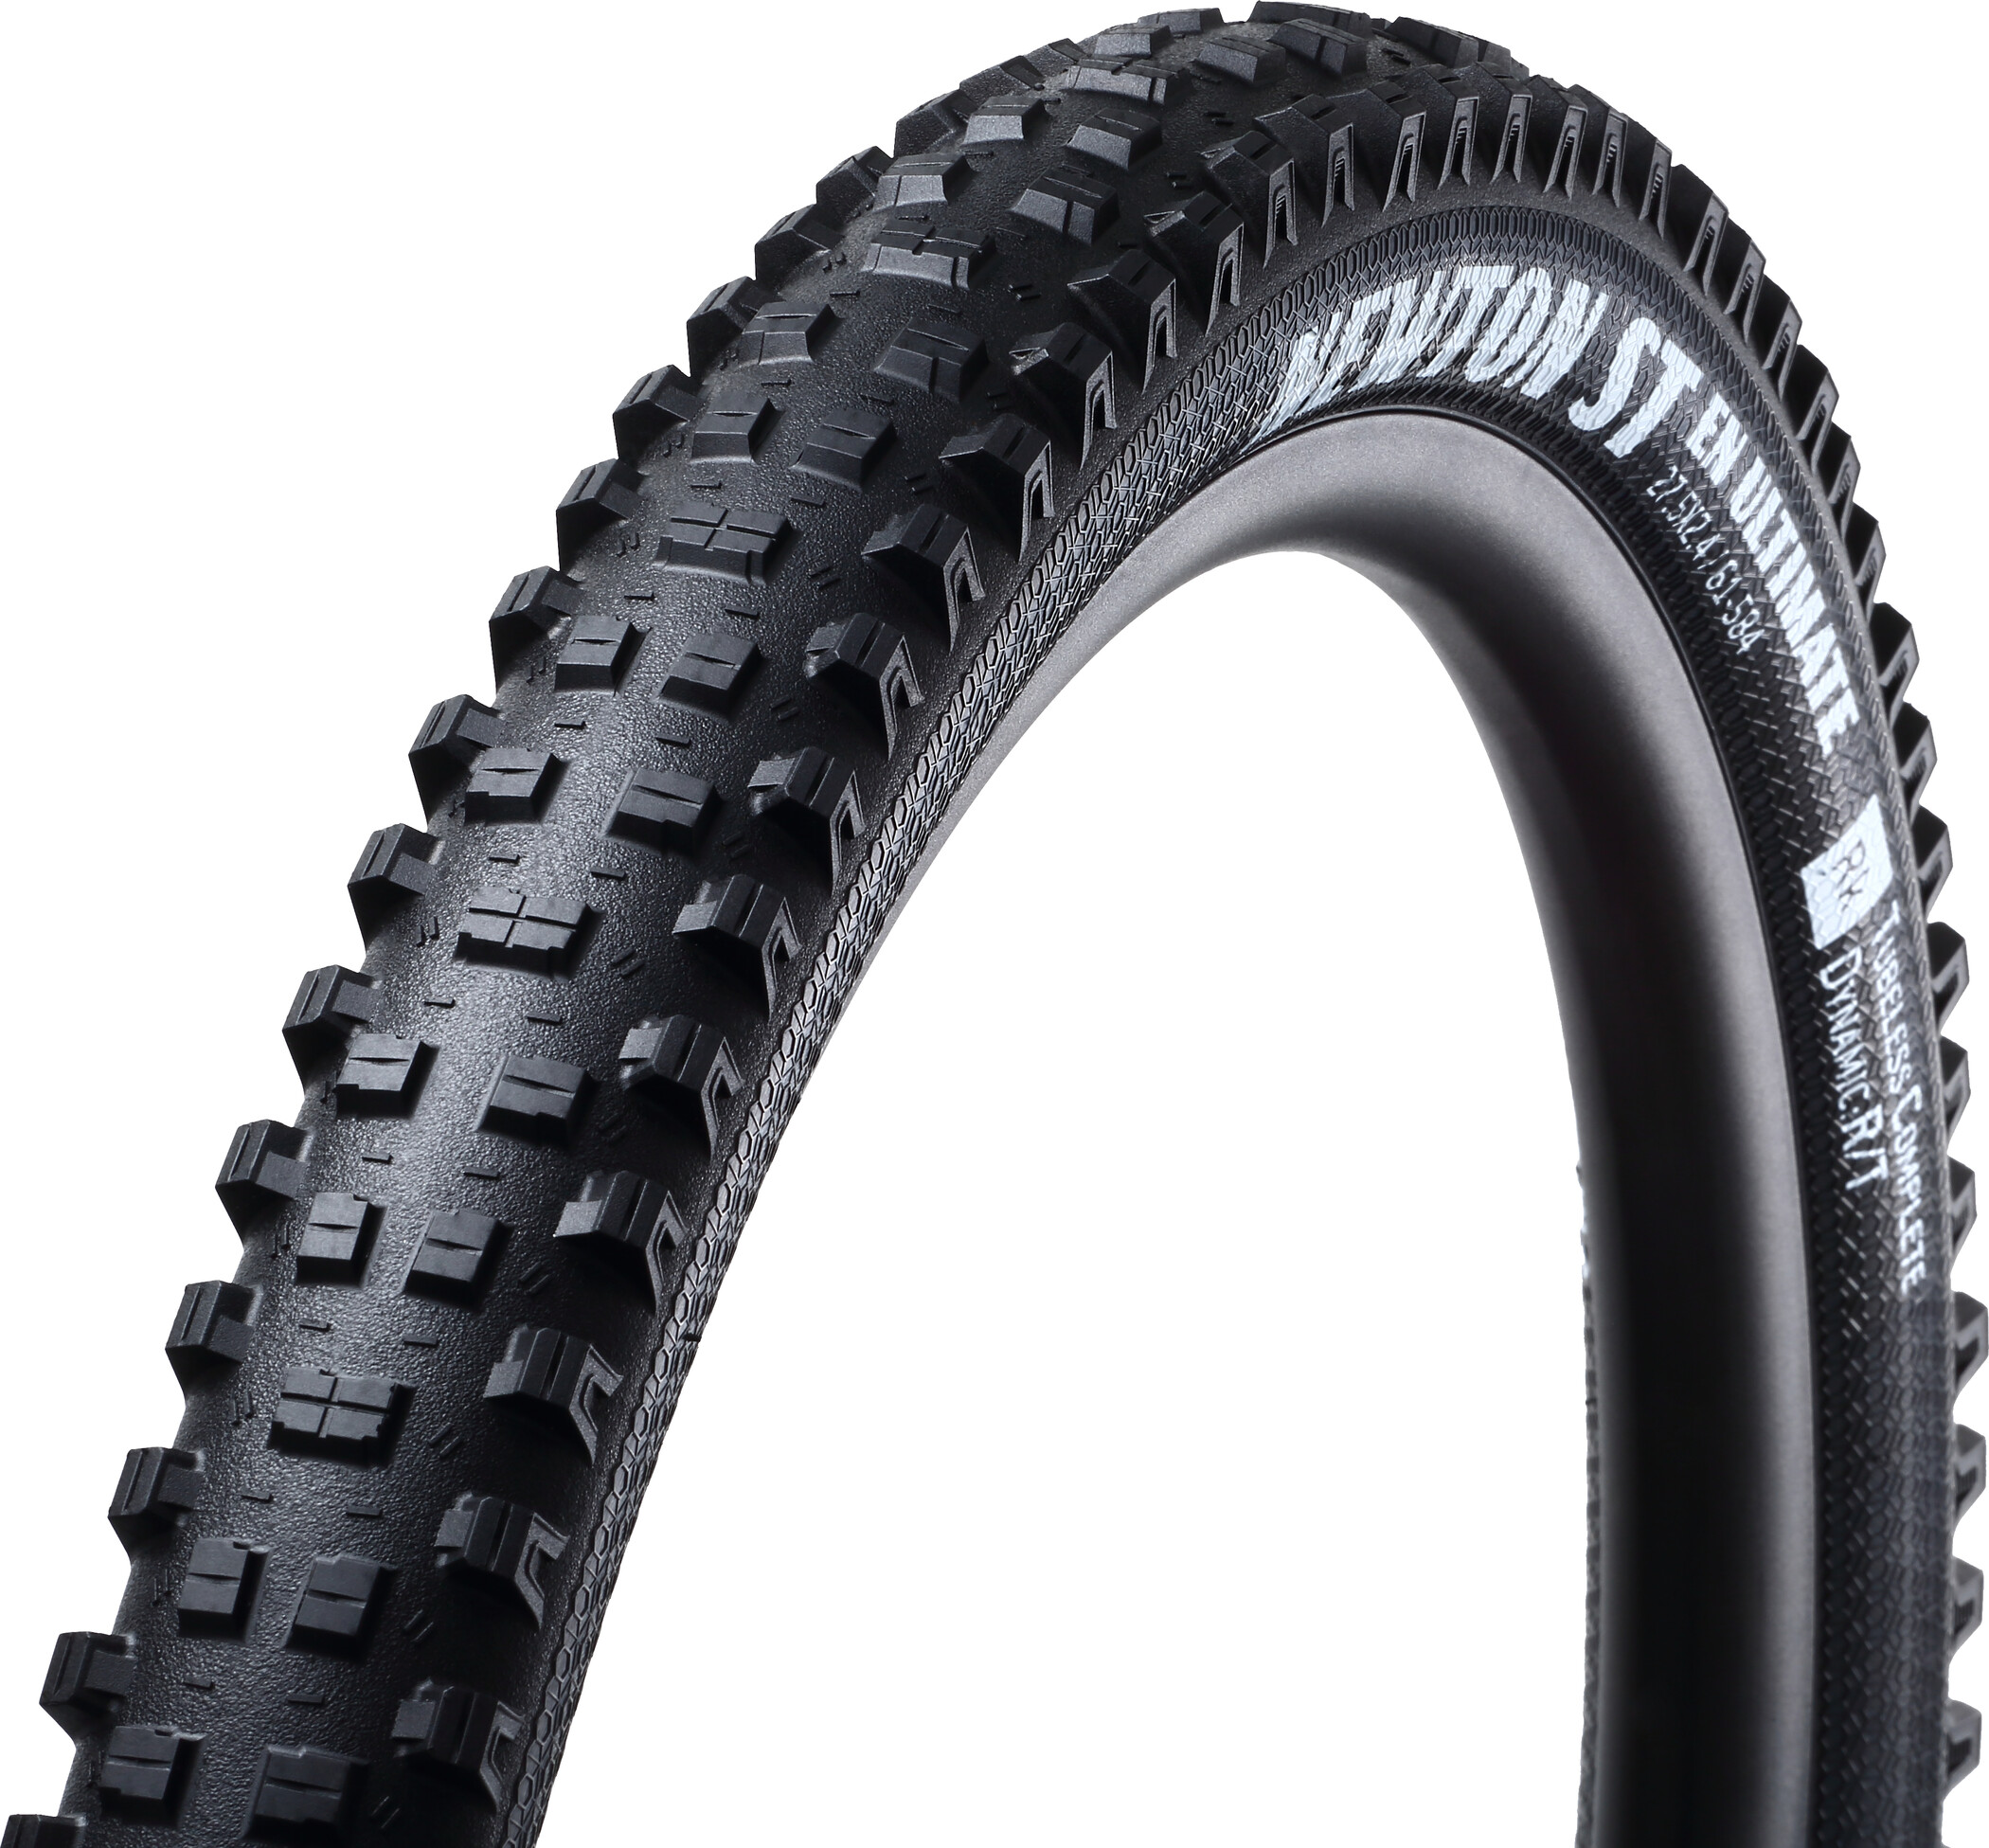 Goodyear Newton-ST DH Ultimate Foldedæk 66-584 Tubeless Complete Dynamic RS/T e25, black (2019)   Tyres